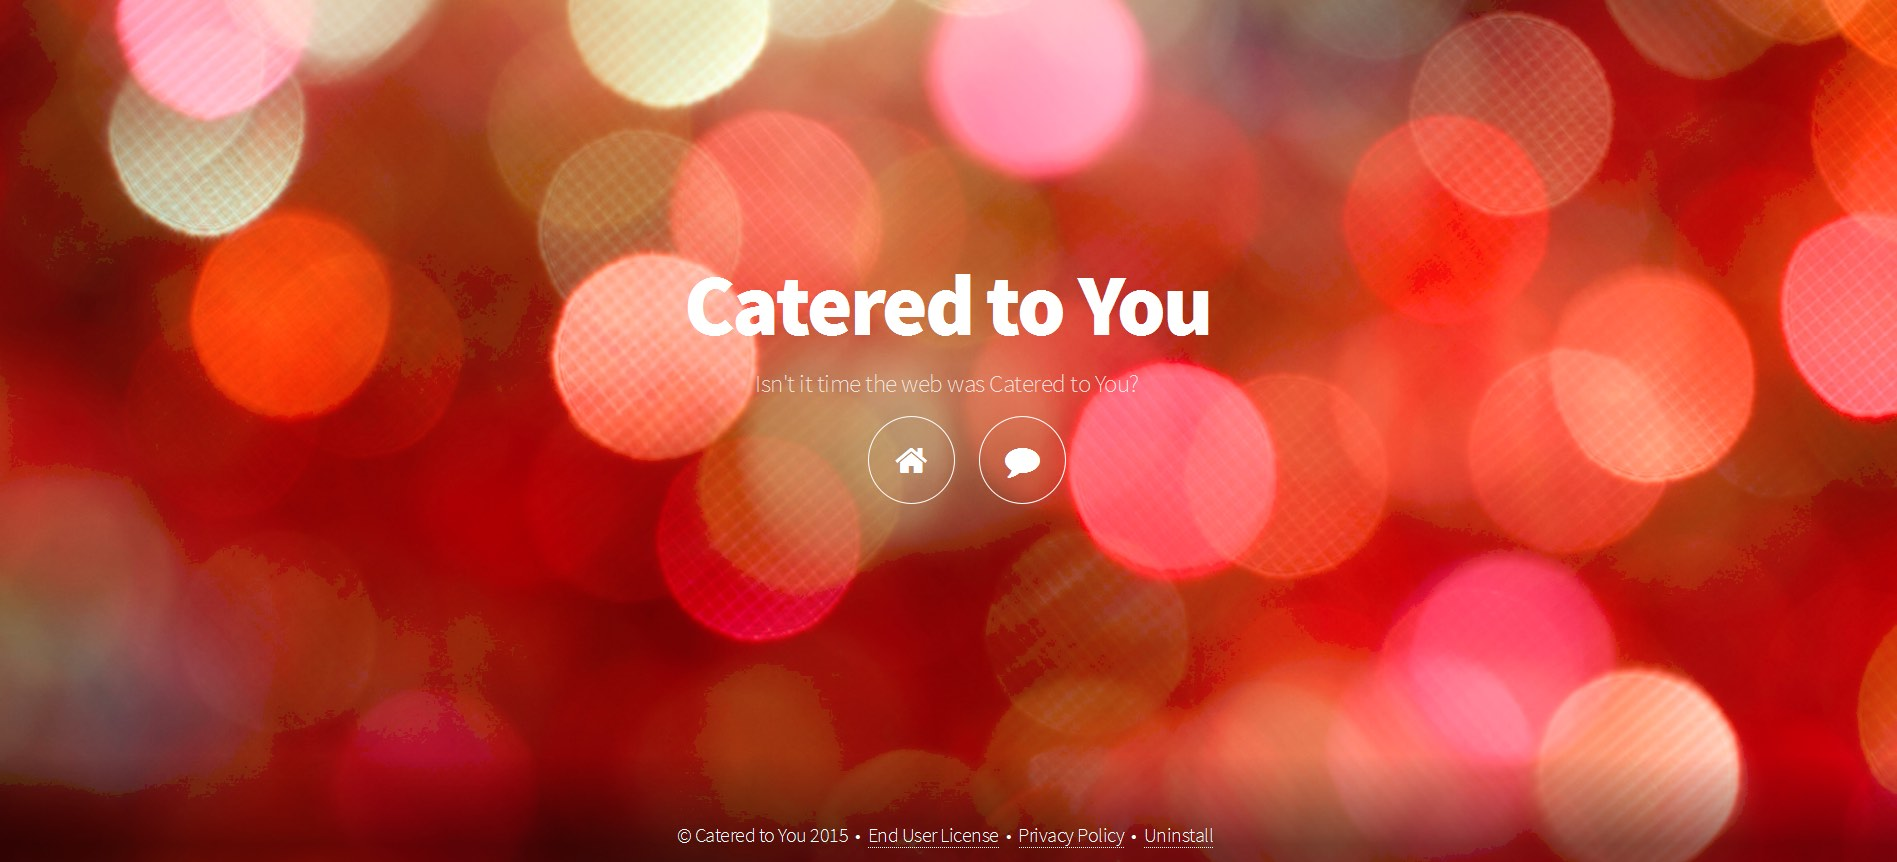 Catered to You